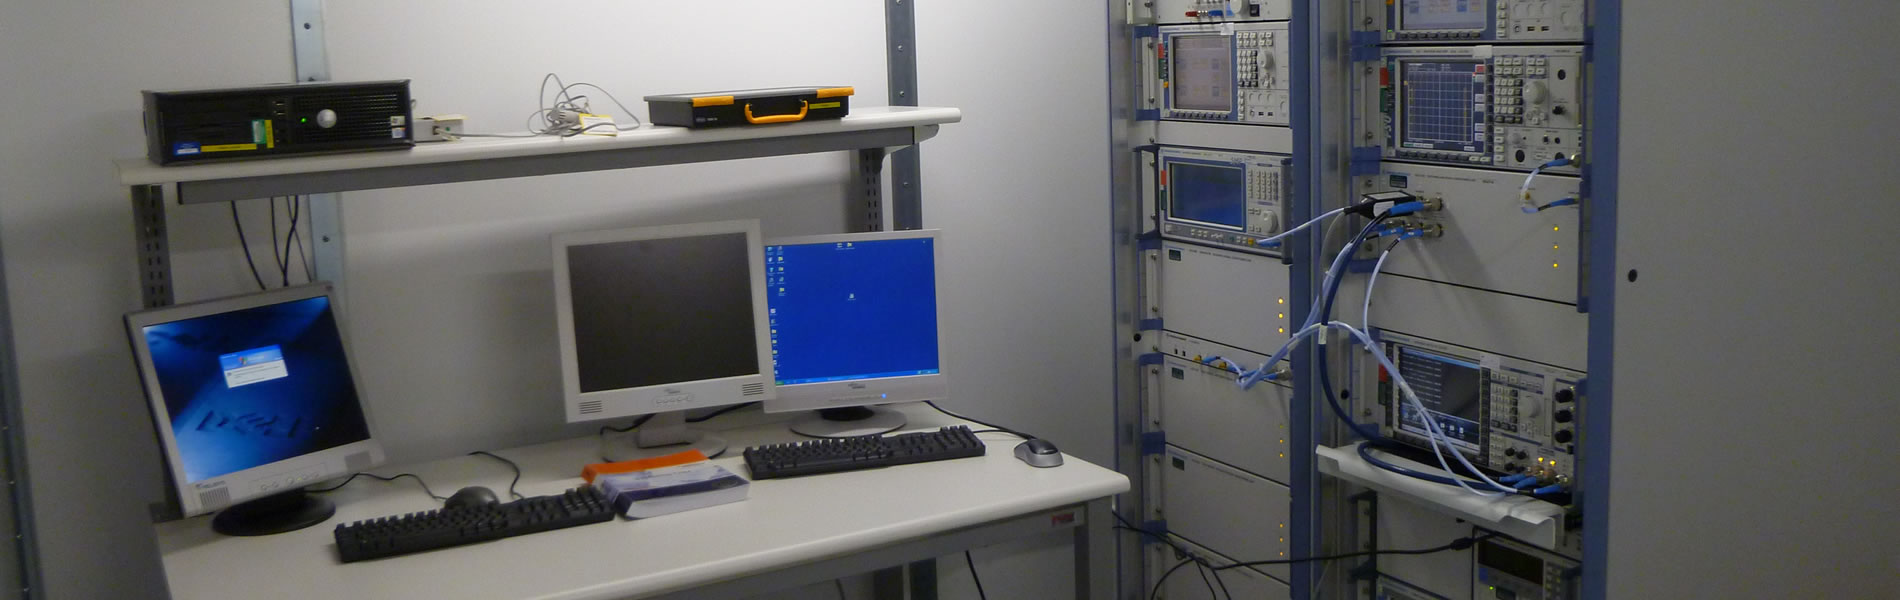 ESD Installations and Testing Services